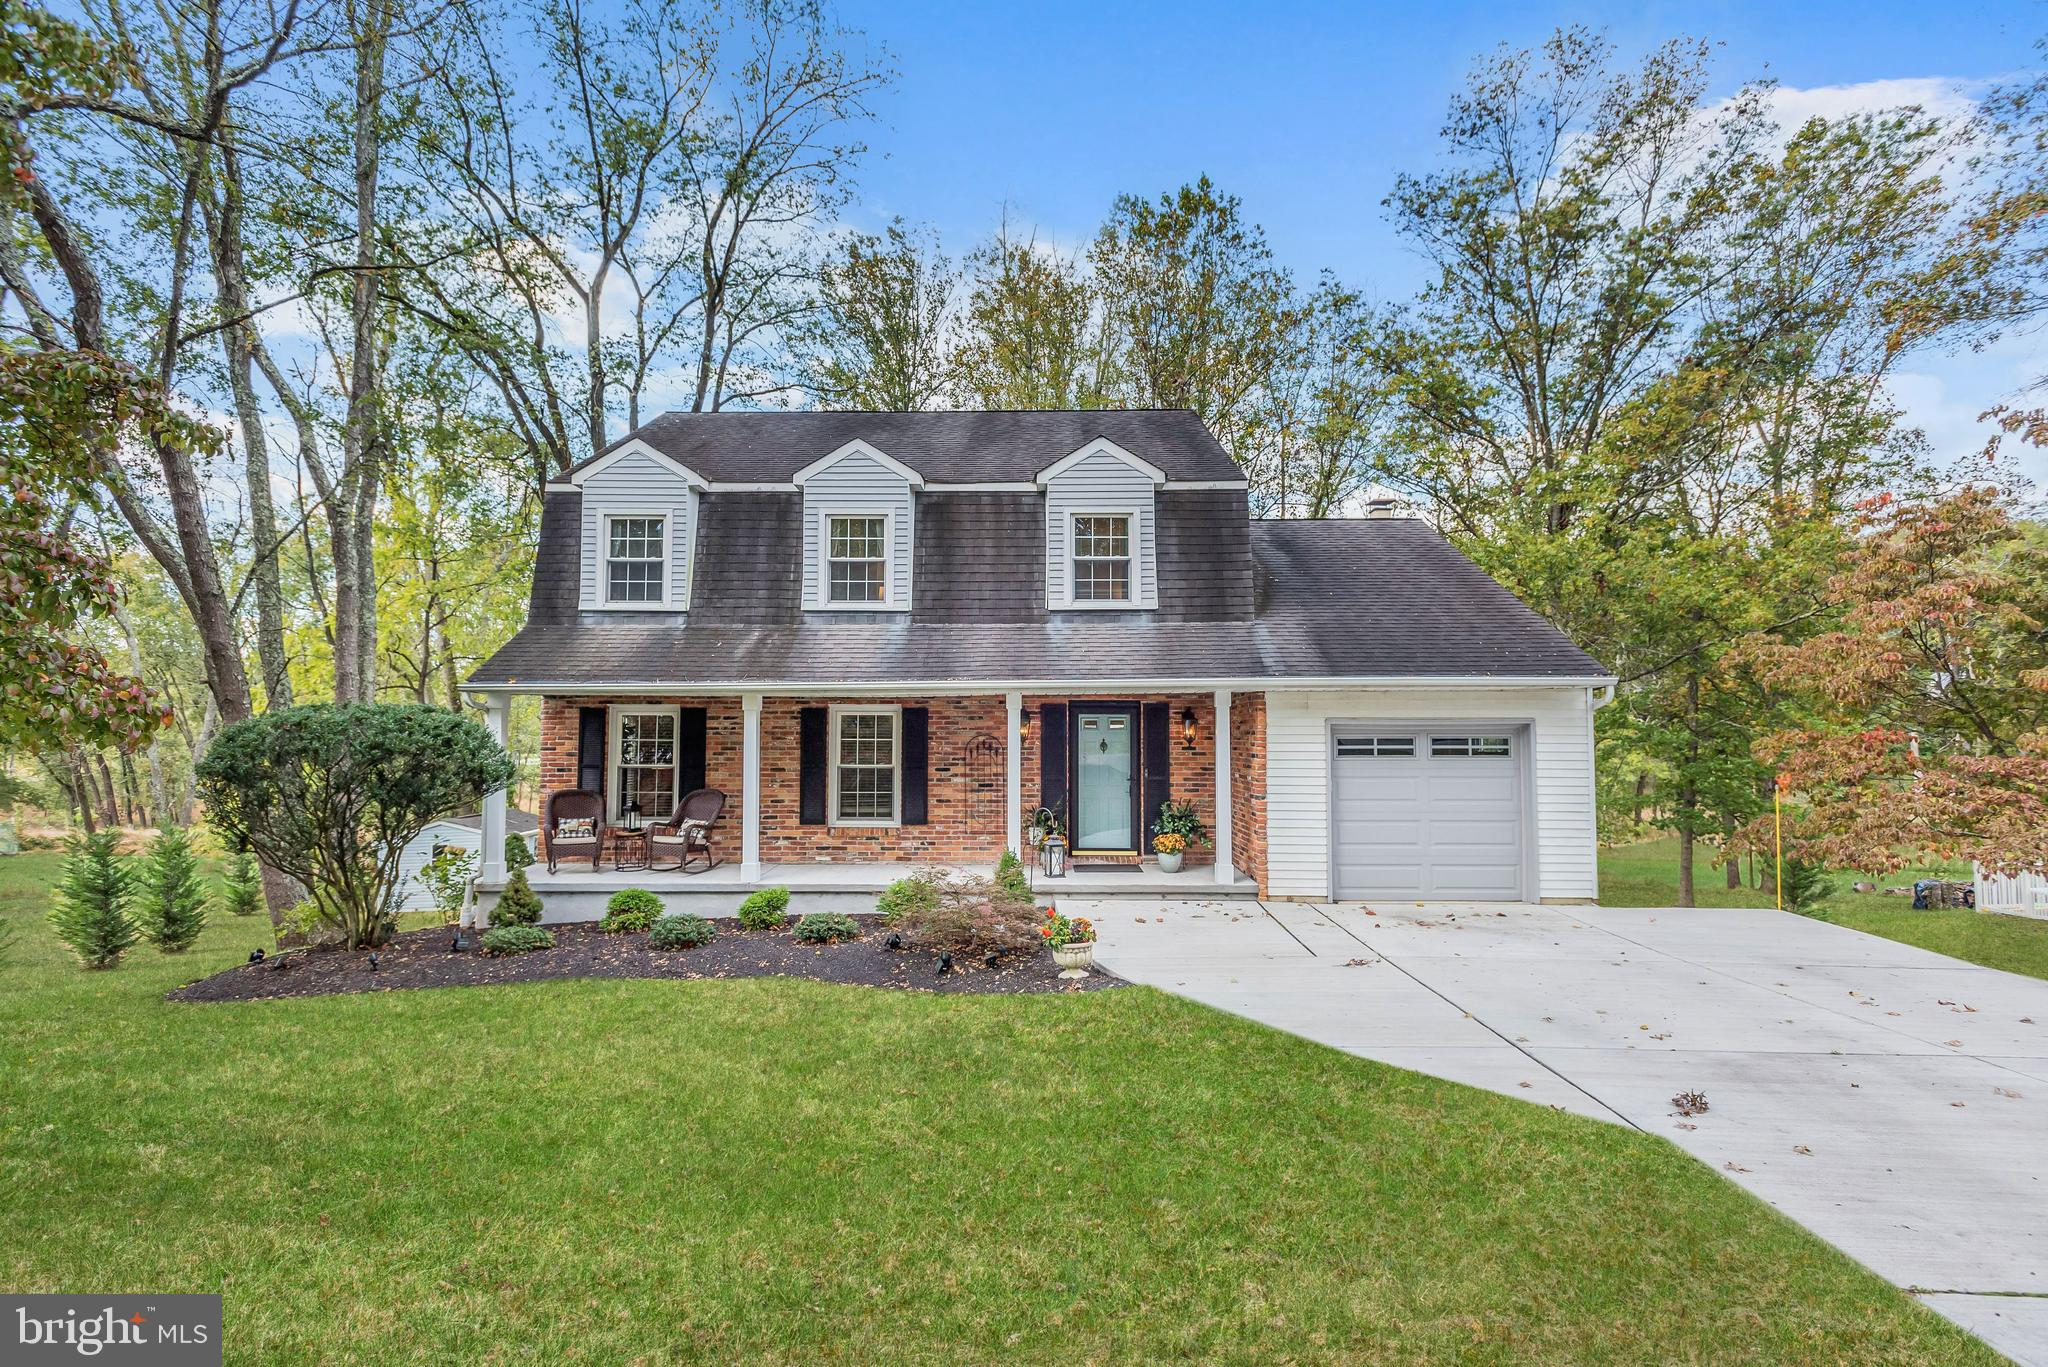 Beautiful Colonial, sited on almost half an acre backing to woods, boasts 3 finished floors with upd